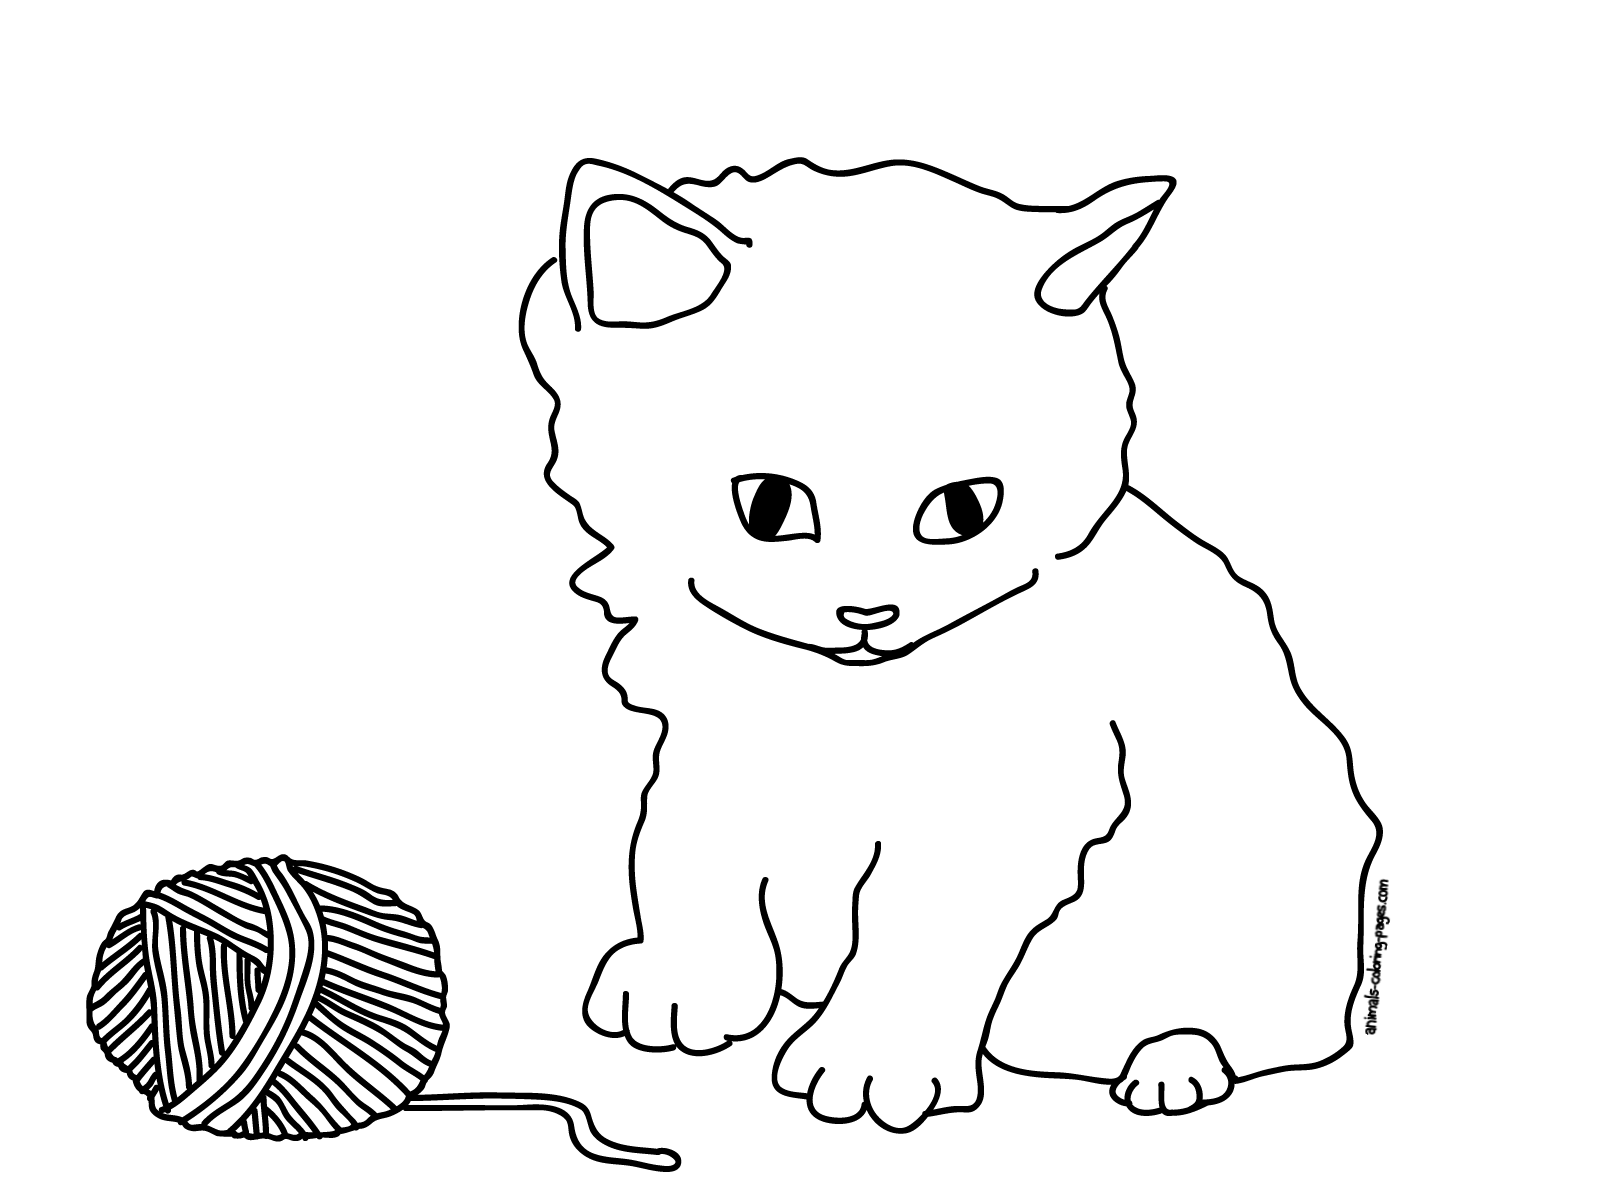 cat colouring pages kitty cat coloring pages coloring pages for kids colouring cat pages